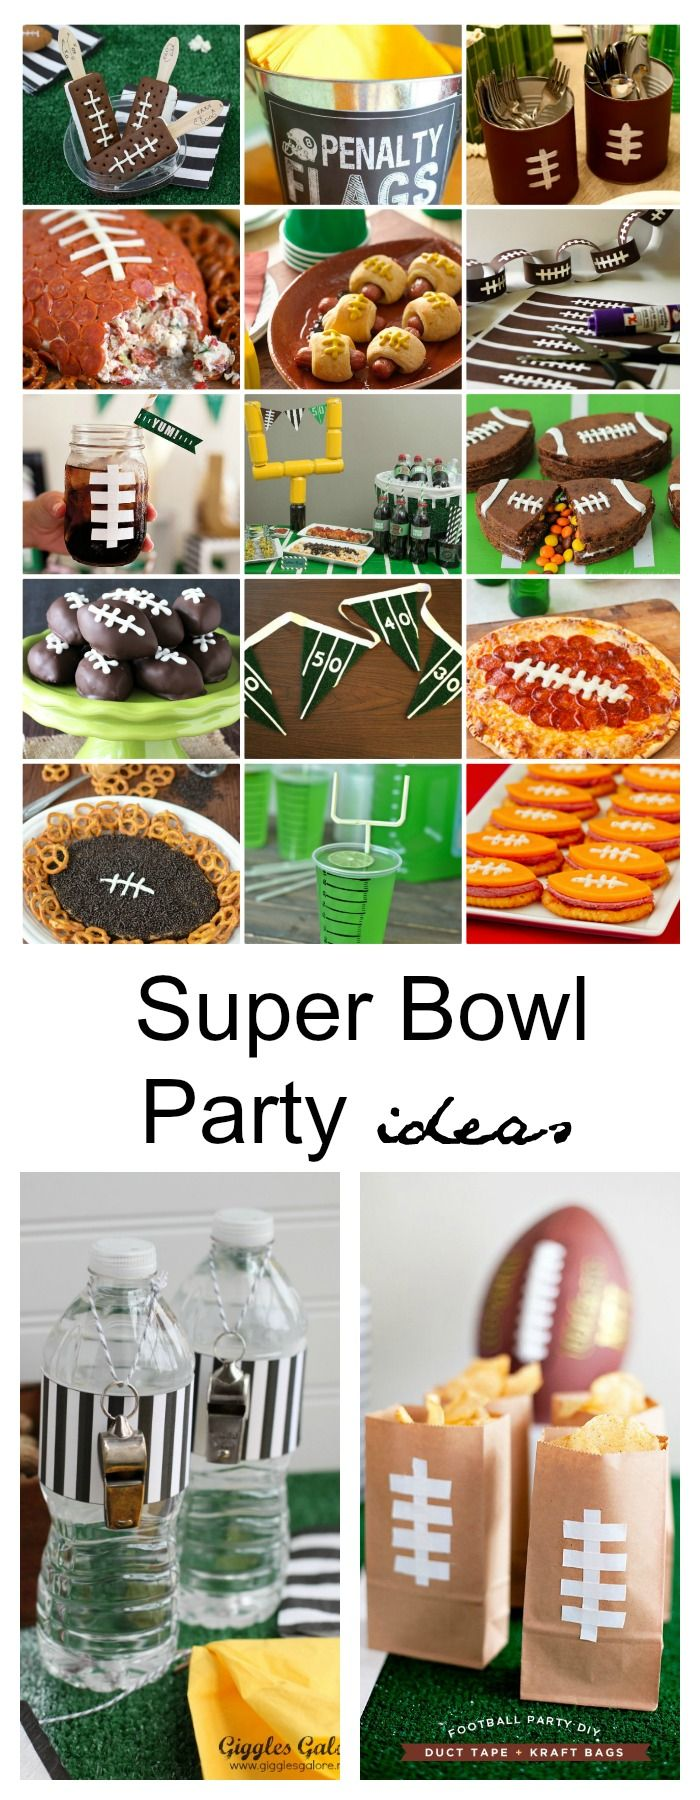 When planning a Super Bowl Party, don't you think the decorations and food are almost as important as the commercials and oh yeah…. the game! Sharing some Super Bowl Party Ideas that are sure to get you inspired to start planning for your get together.